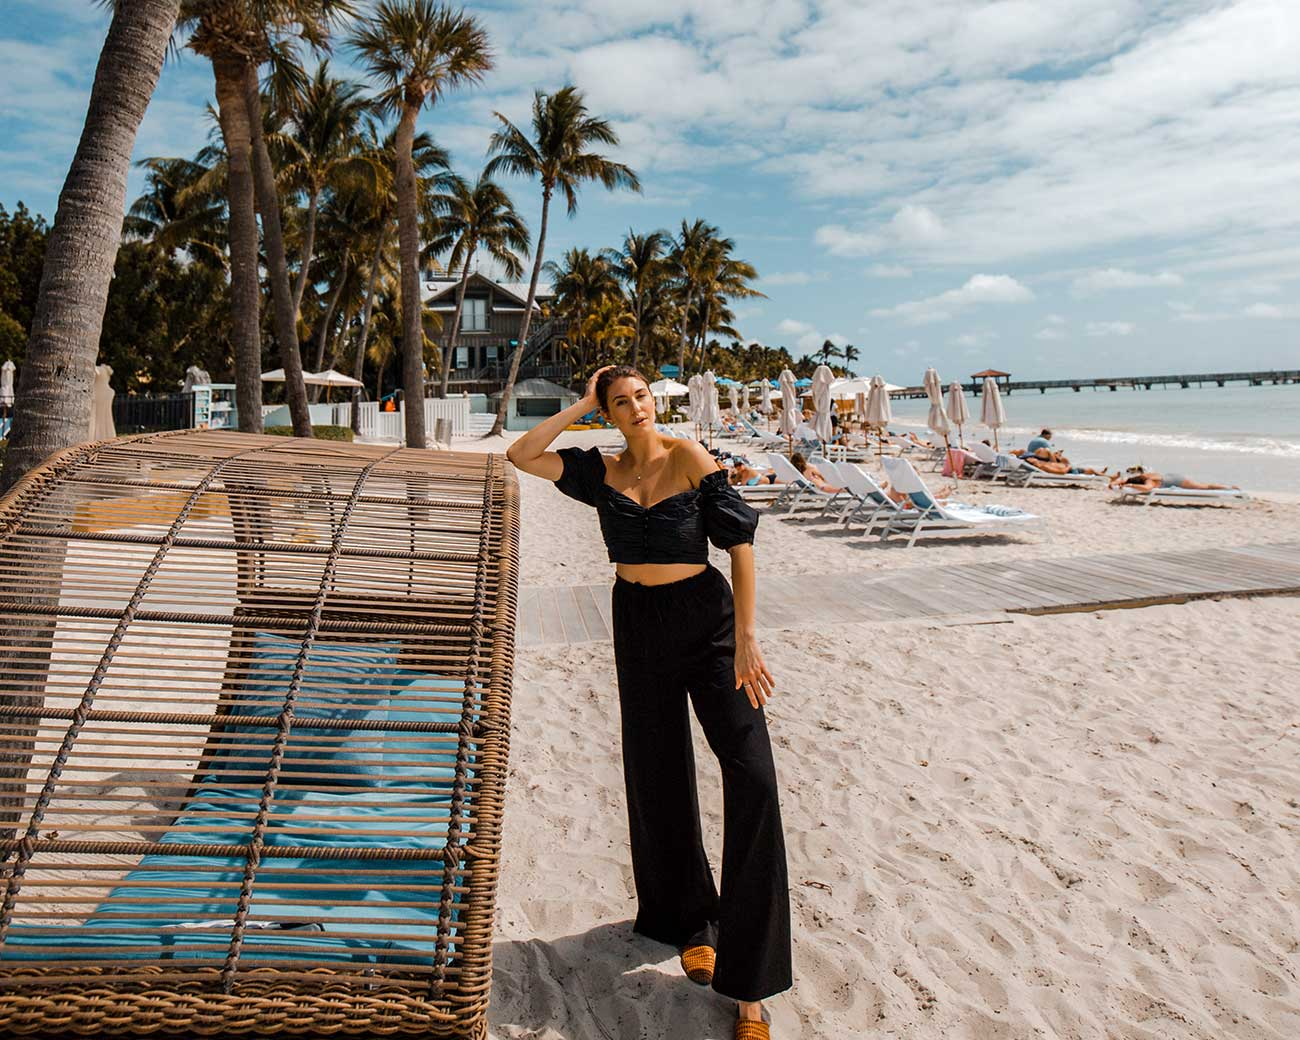 Florida Keys Road Trip Itinerary: Miami To Key West in 5 Days: Key West Travel Guide